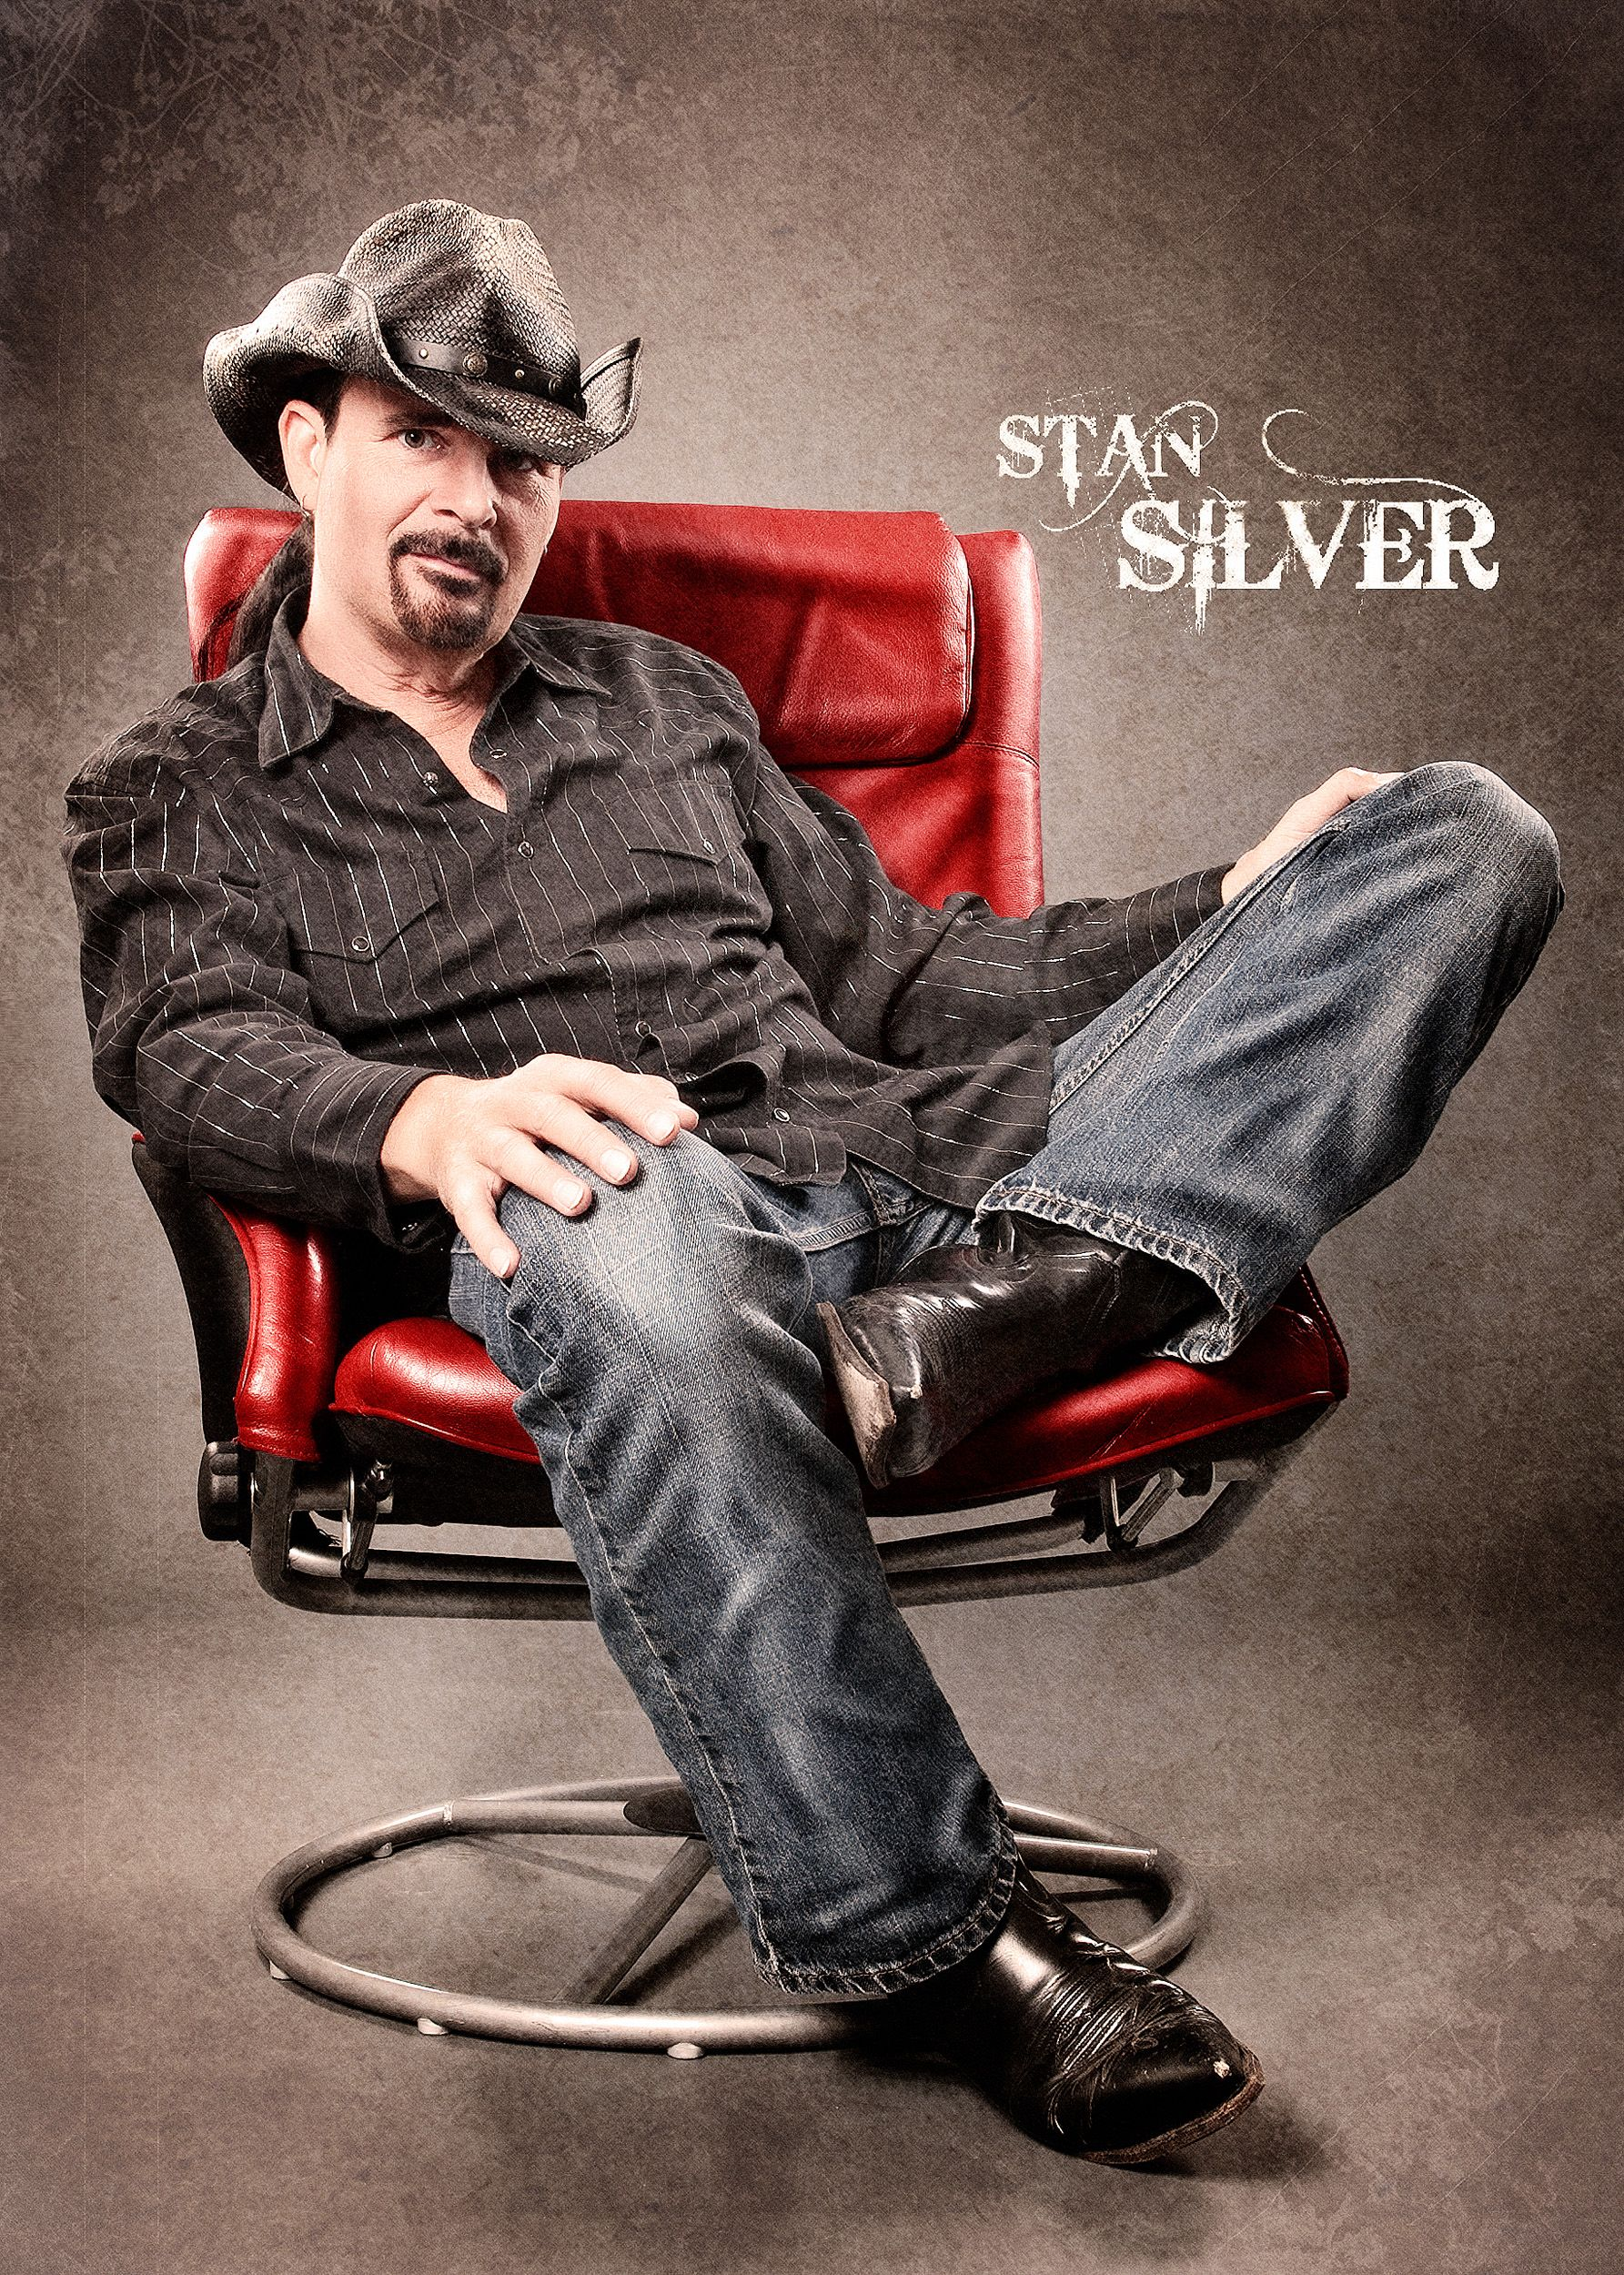 Fotoshooting Sessel Stan Silver Auf Roter Sessel Stan Silver Ist Musiker Sänger Und